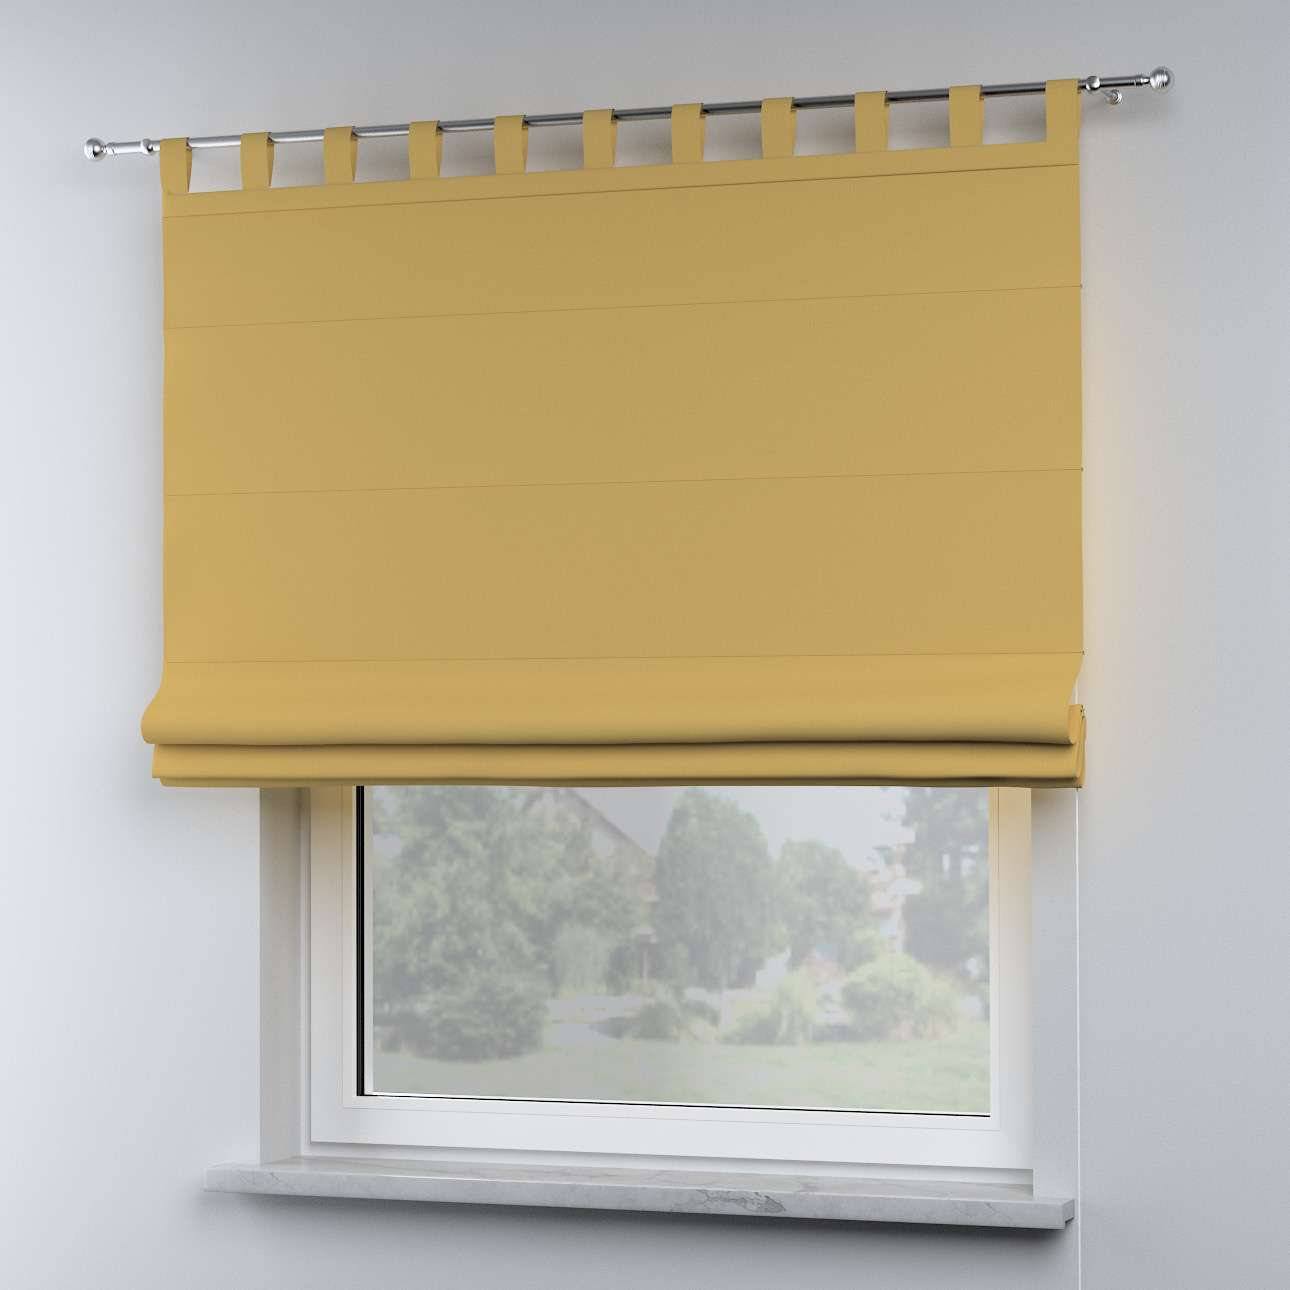 Oli tab top roman blind in collection Cotton Story, fabric: 702-41